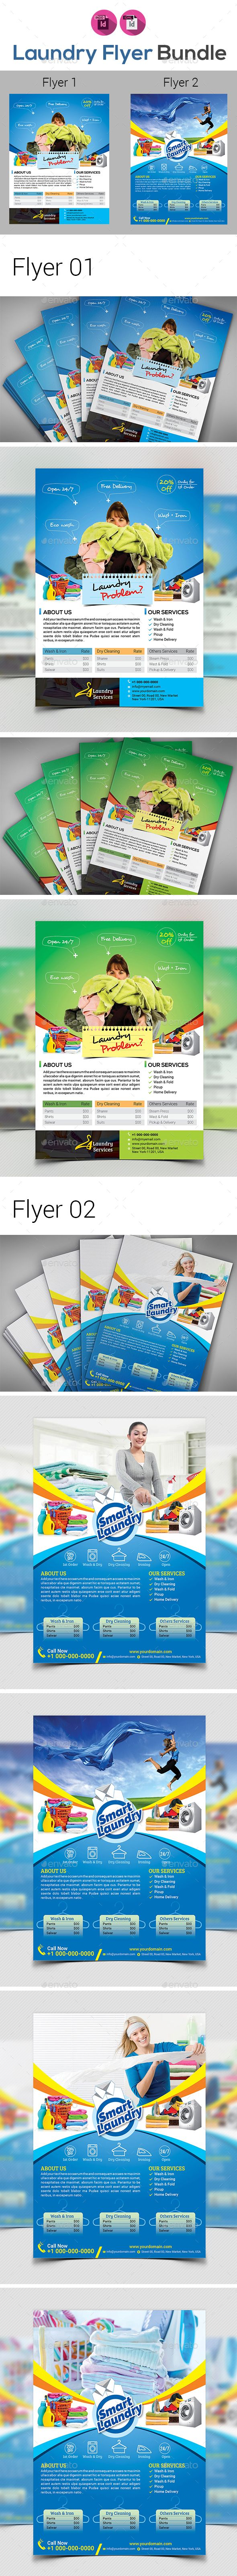 laundry services flyers templates by aam360 featuresflyer01 size 827 x1169 bleed 25 one design two color variations cyan greenfiles included